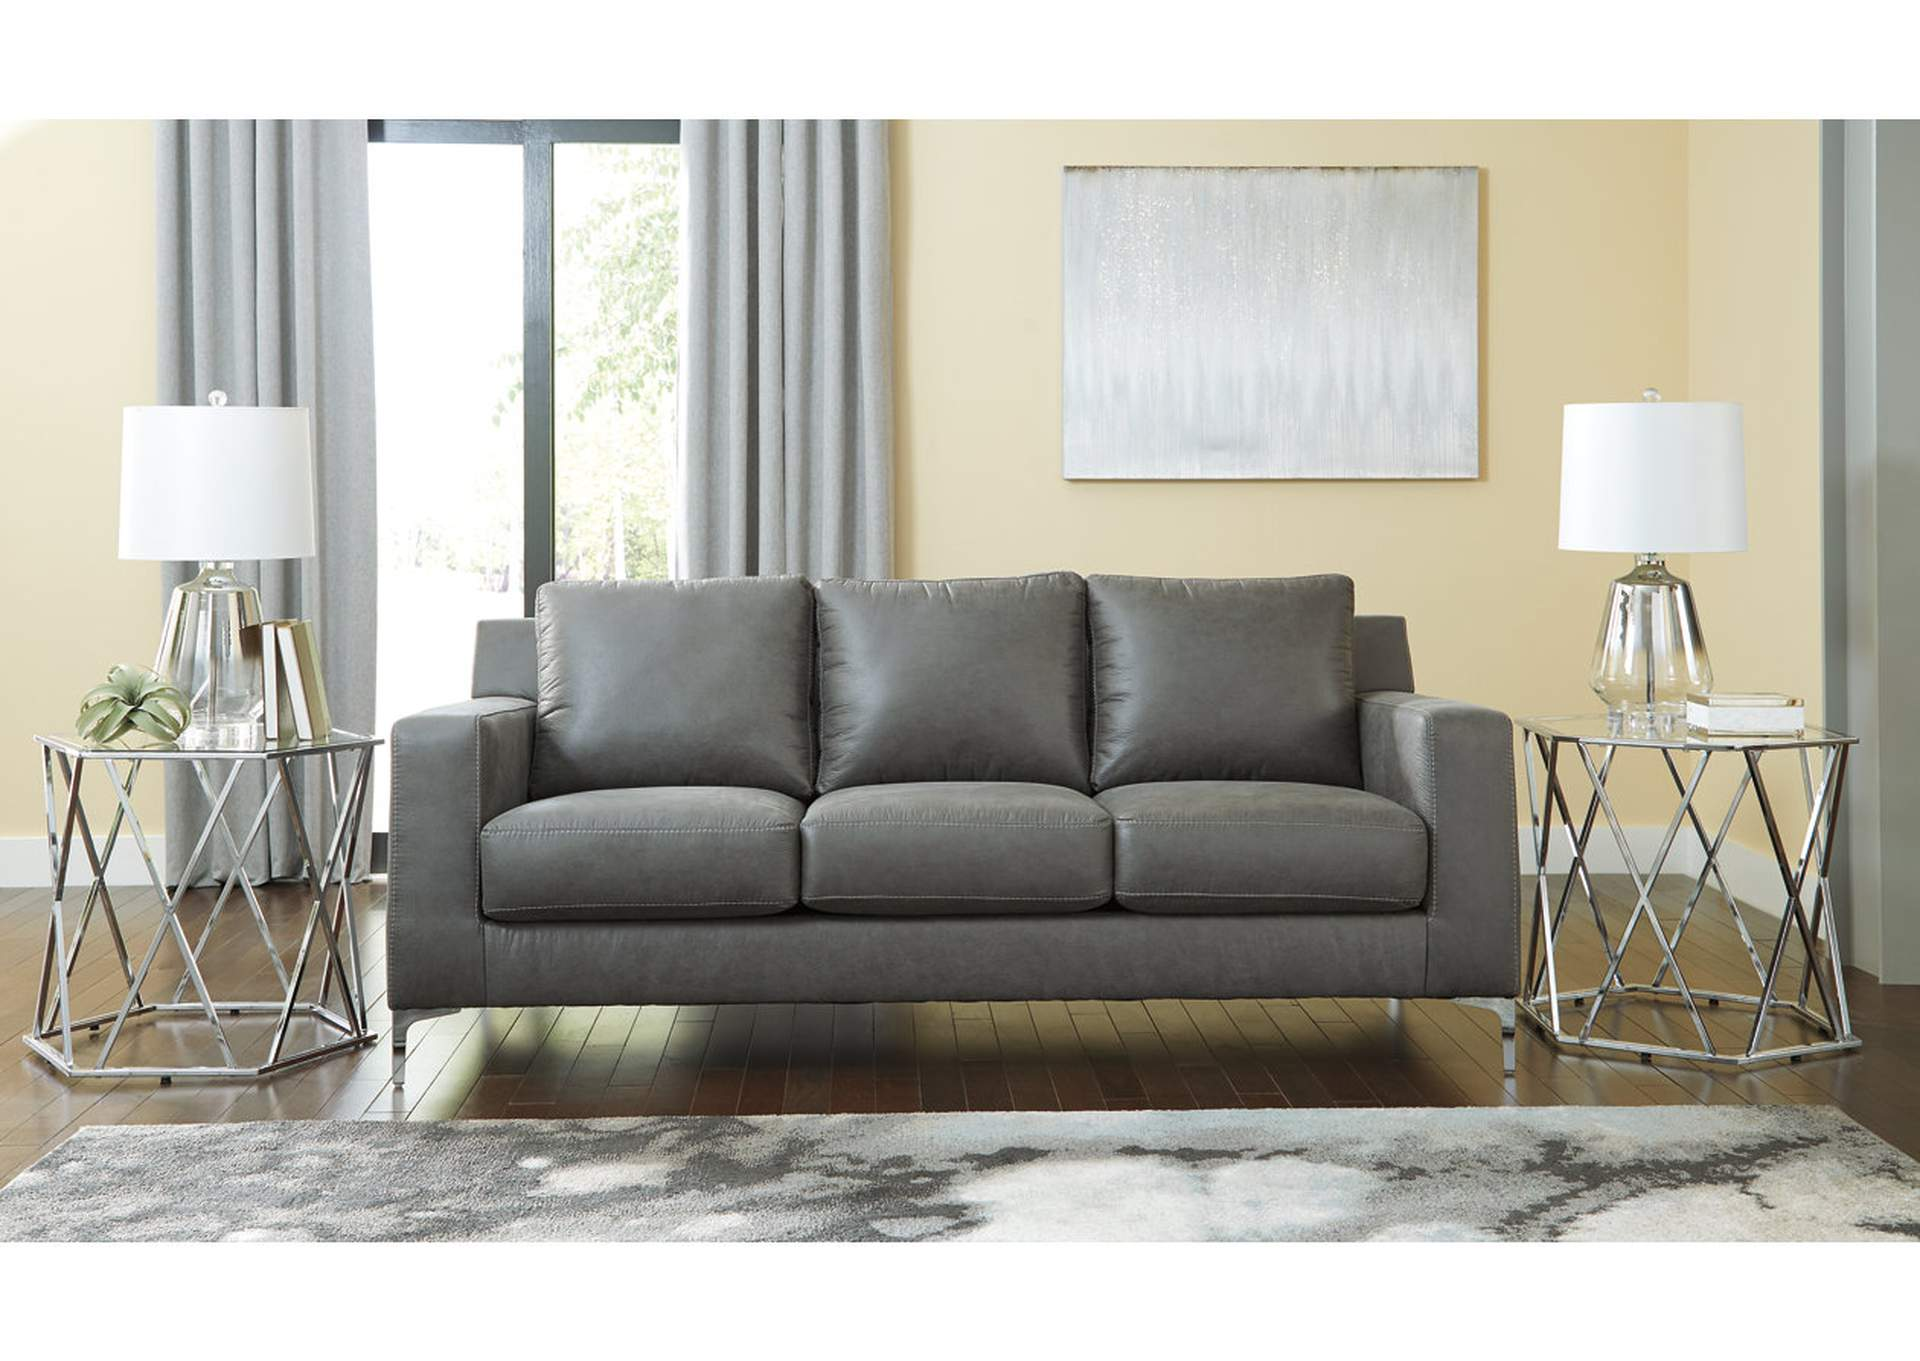 Ryler Charcoal Sofa Gibson Furniture - Gallatin, Hendersonville